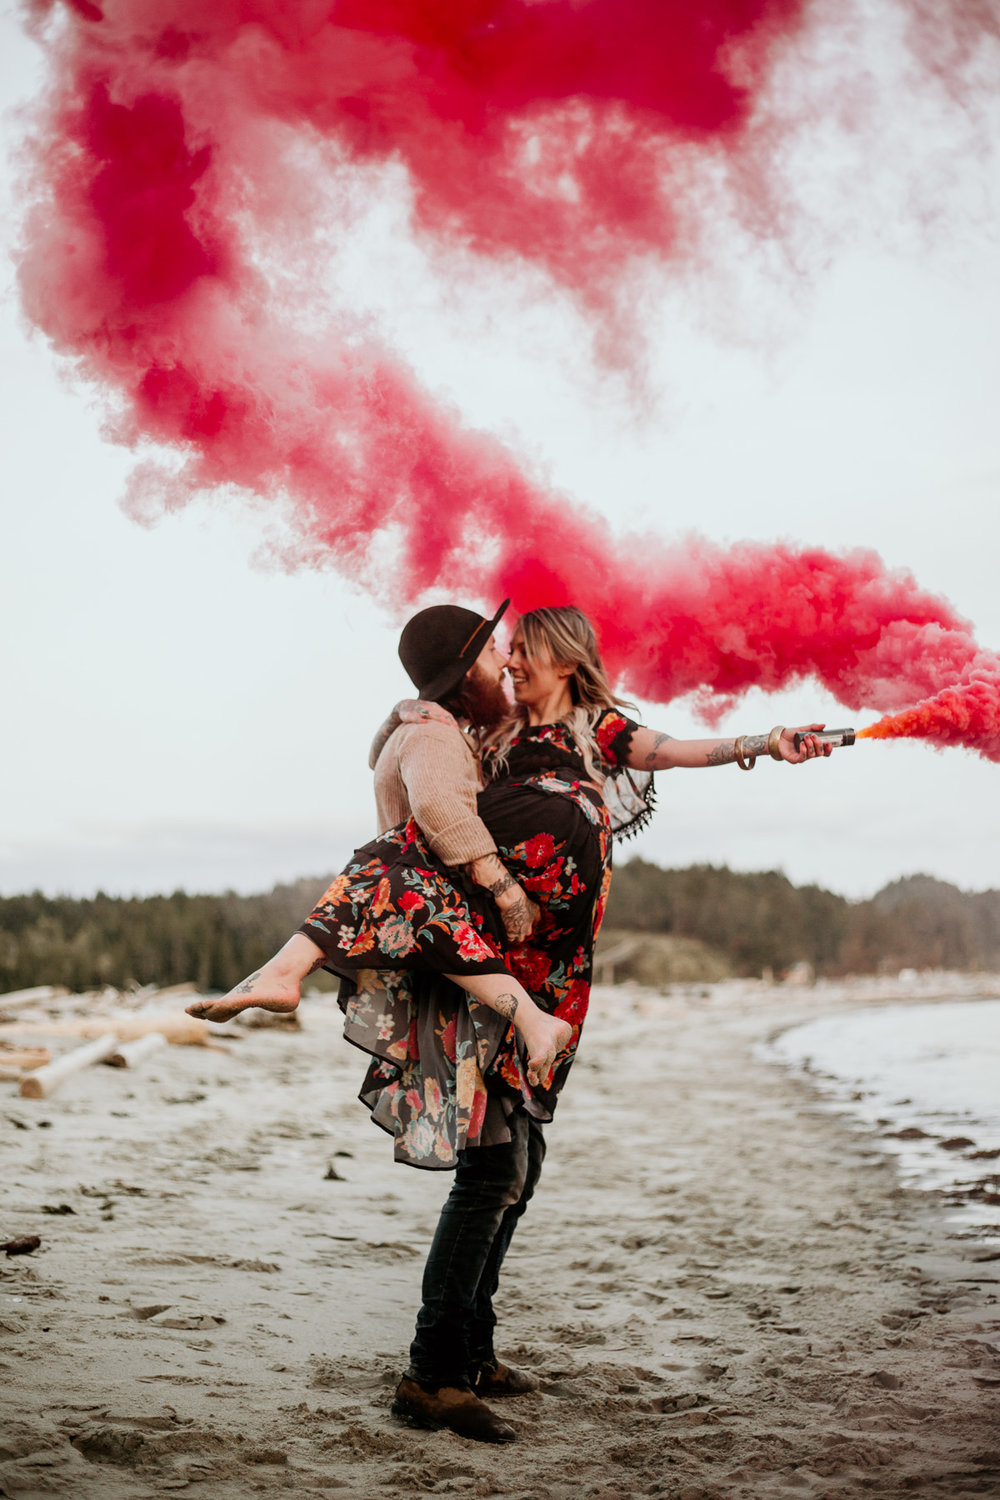 I may have a few smoke bombs on me for your session as well - always so much fun to add a bit of attitude to your images! Let's style up your session!